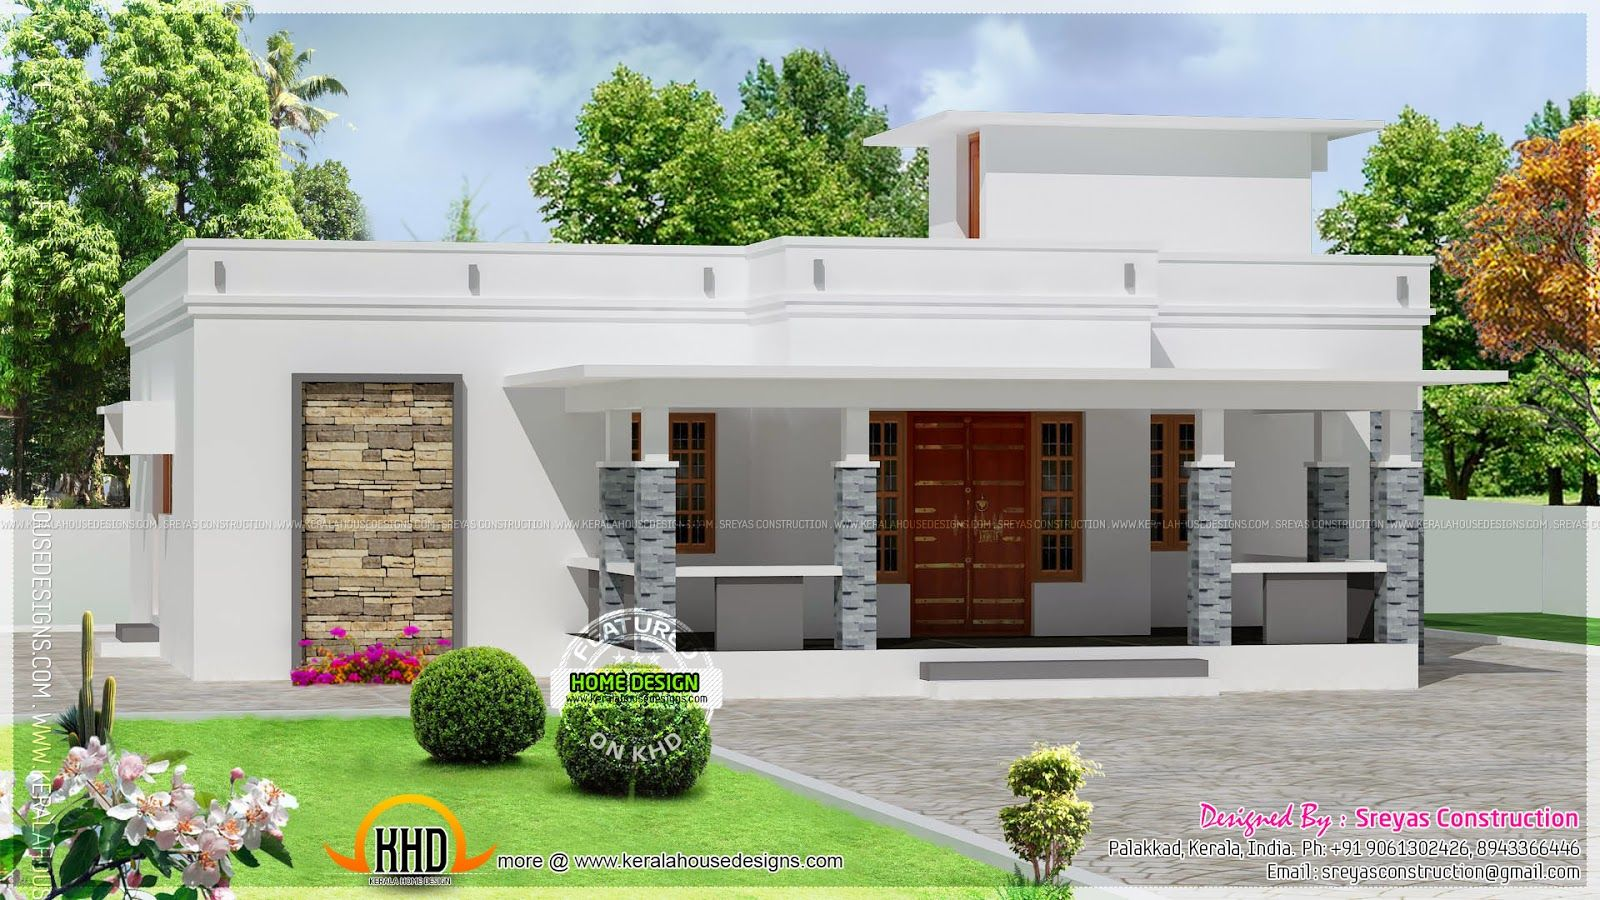 Small house plans kerala with photos home deco beautiful homes also pin by josna joy on steve bday pinterest and rh